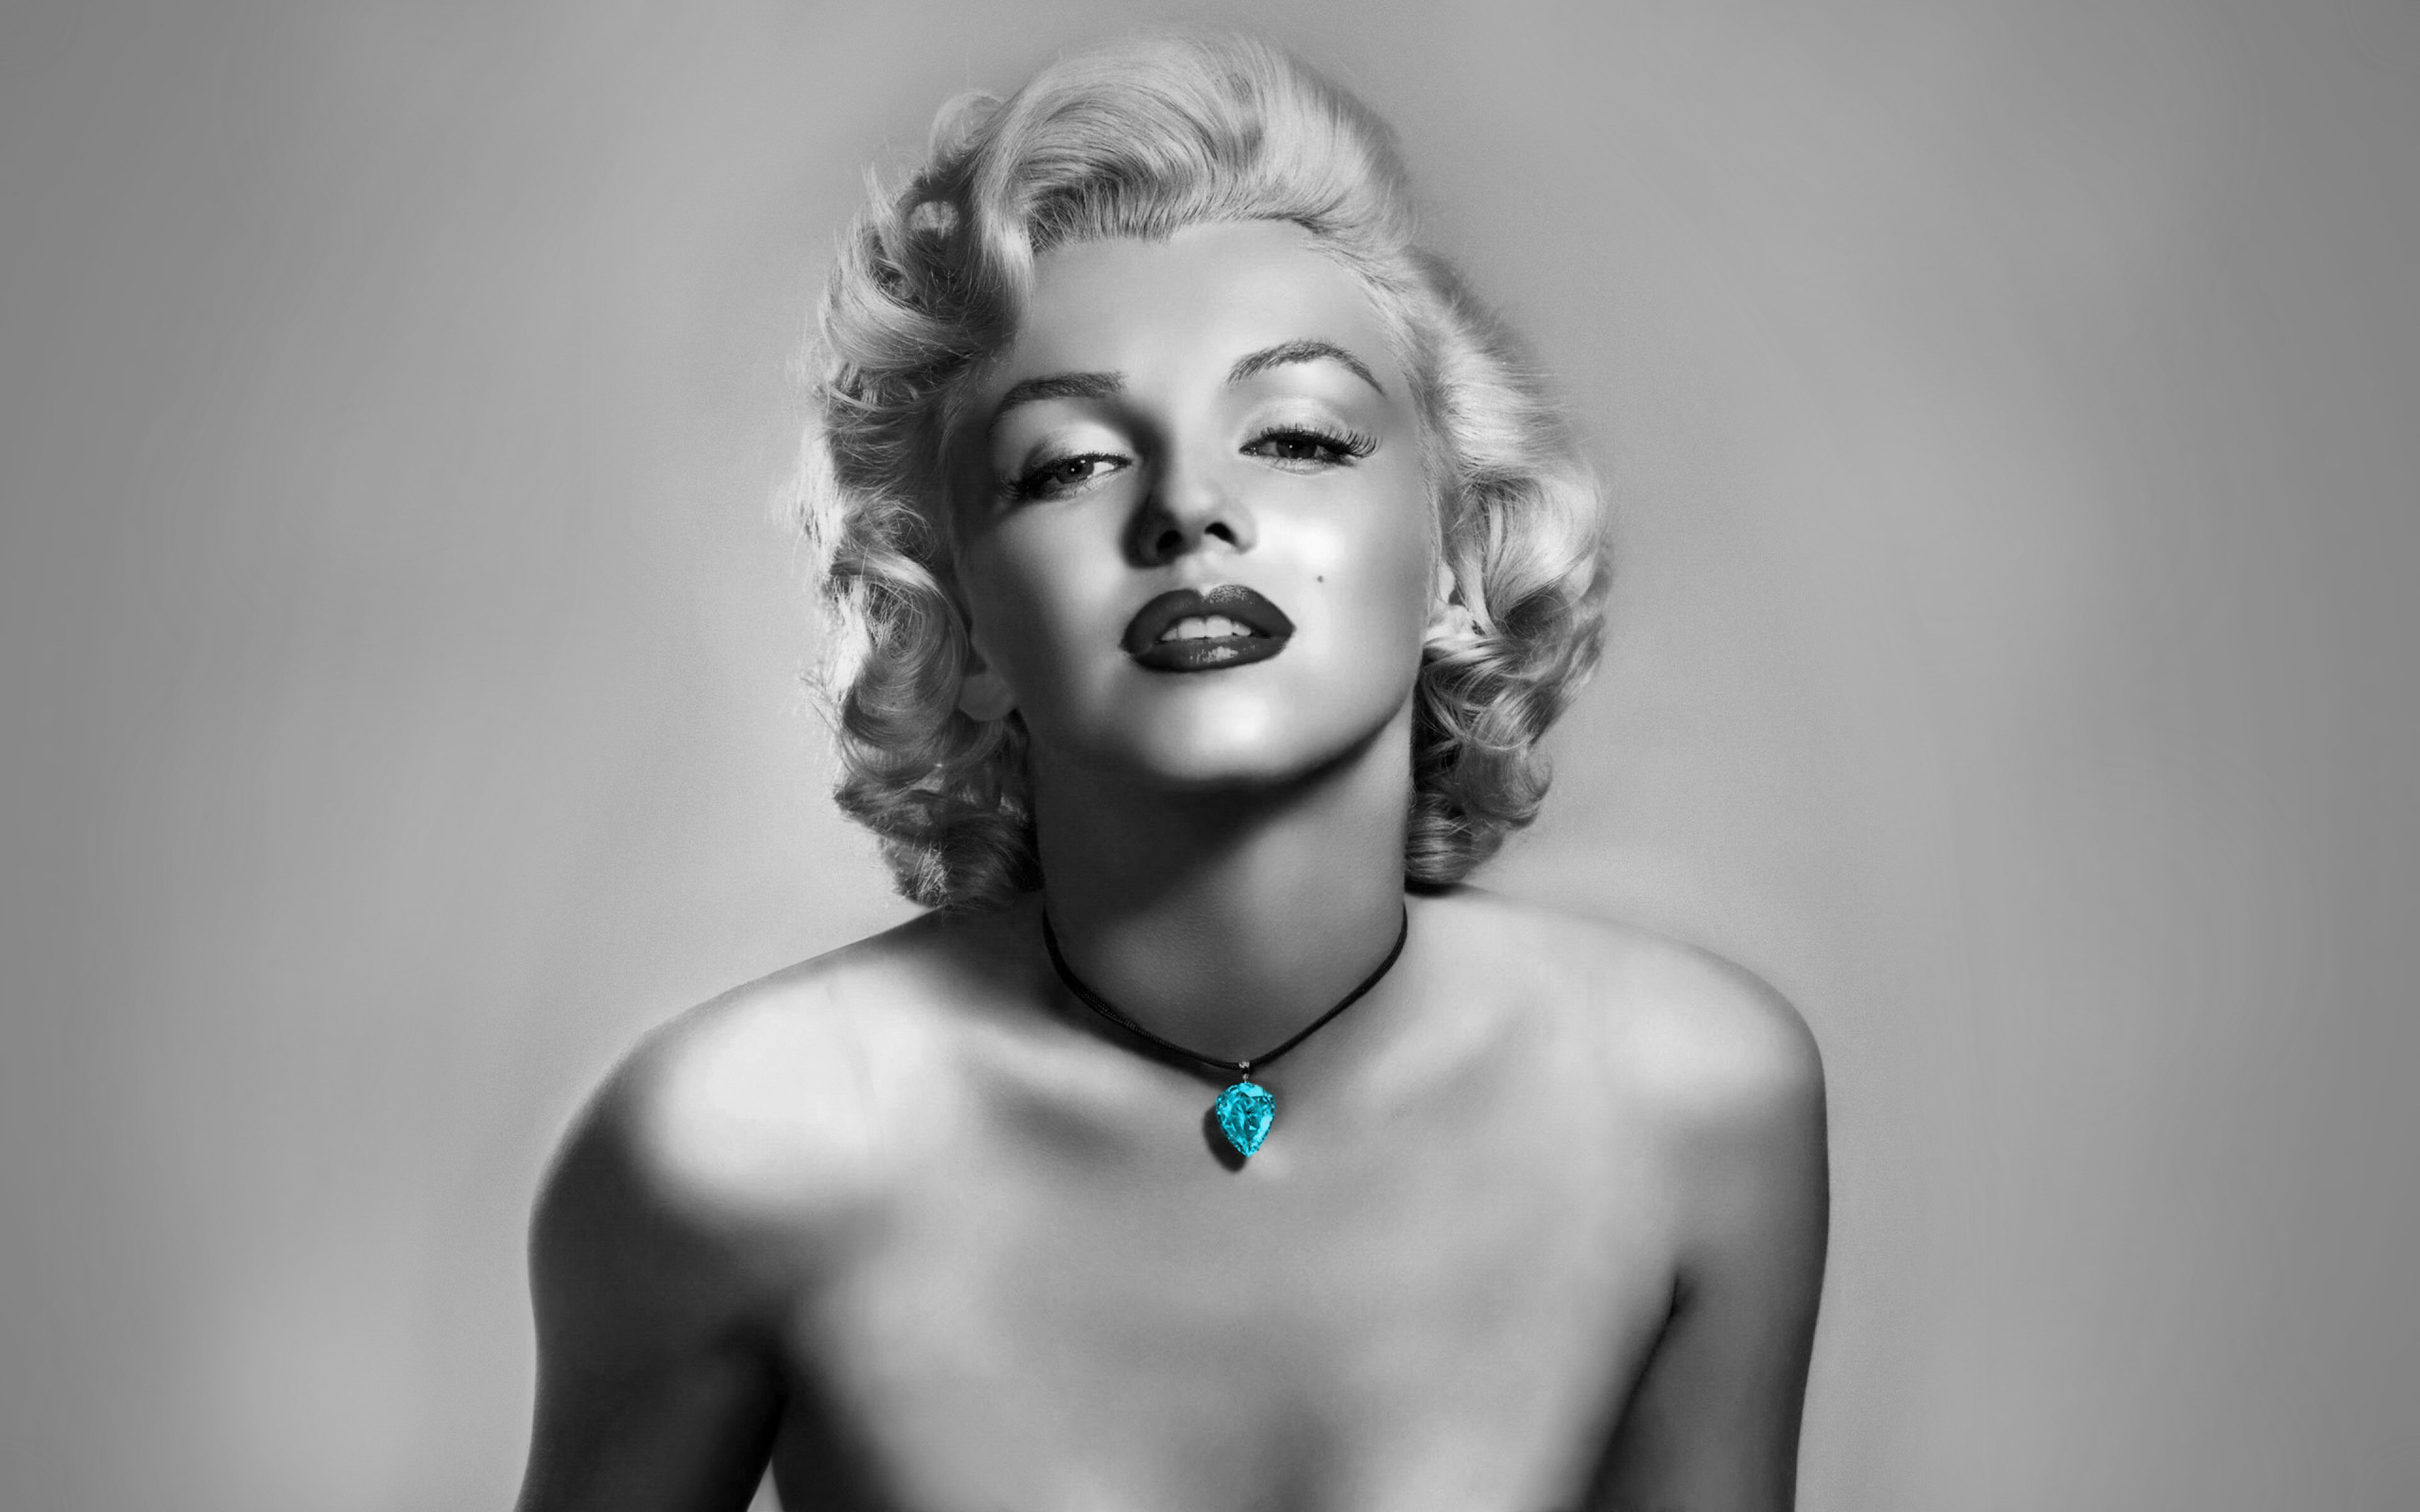 105 marilyn monroe hd wallpapers | background images - wallpaper abyss